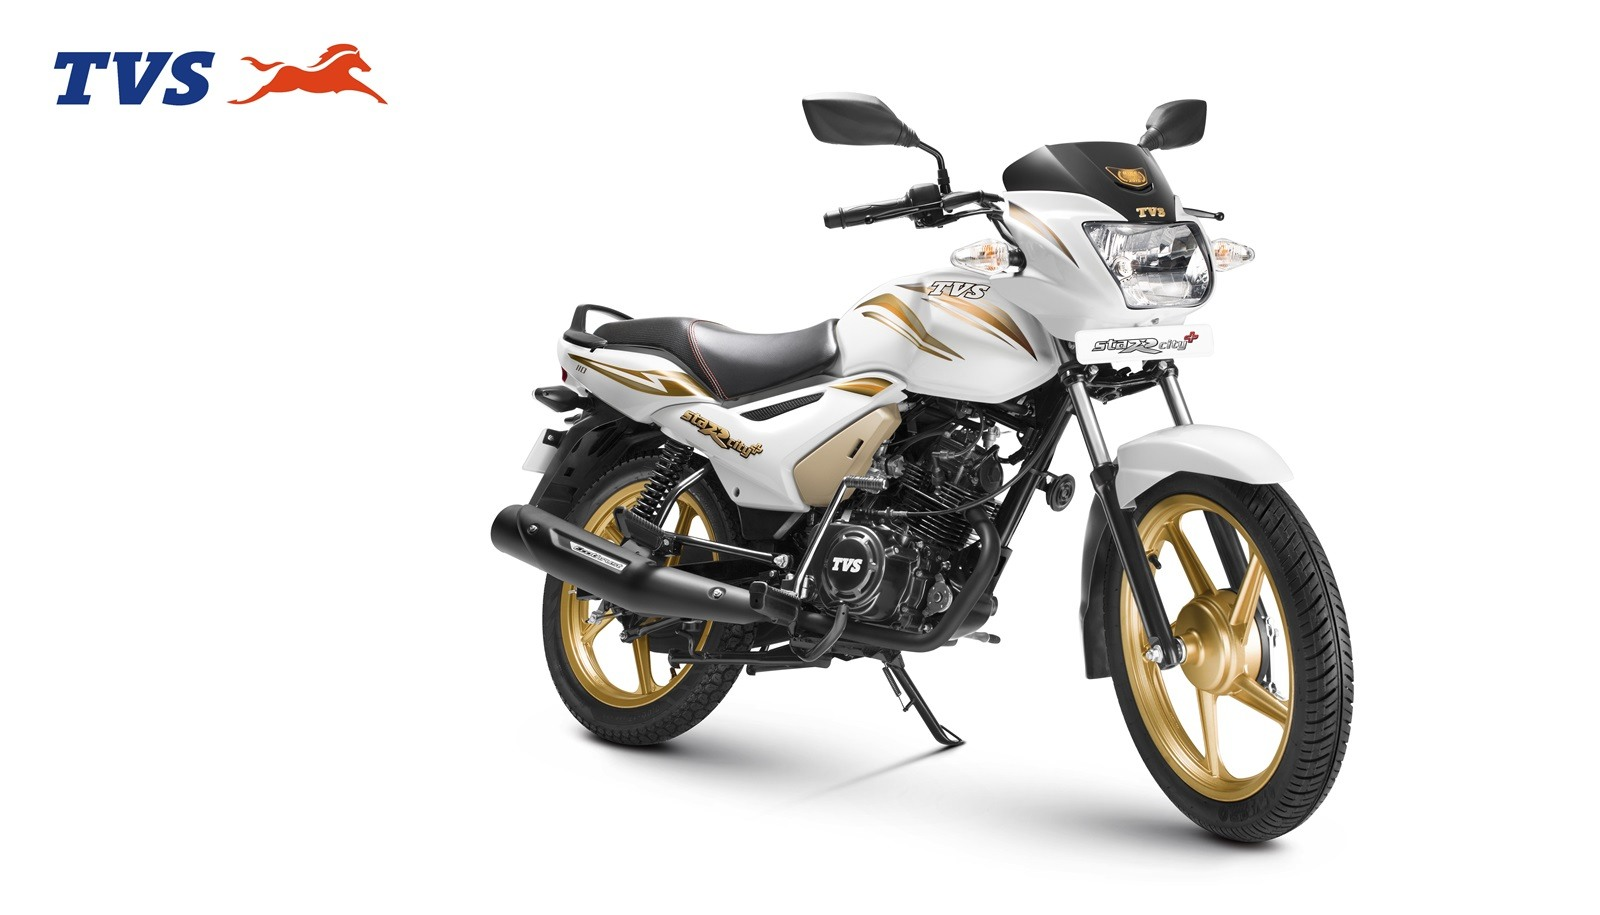 TVS StaRCity+ special gold edition